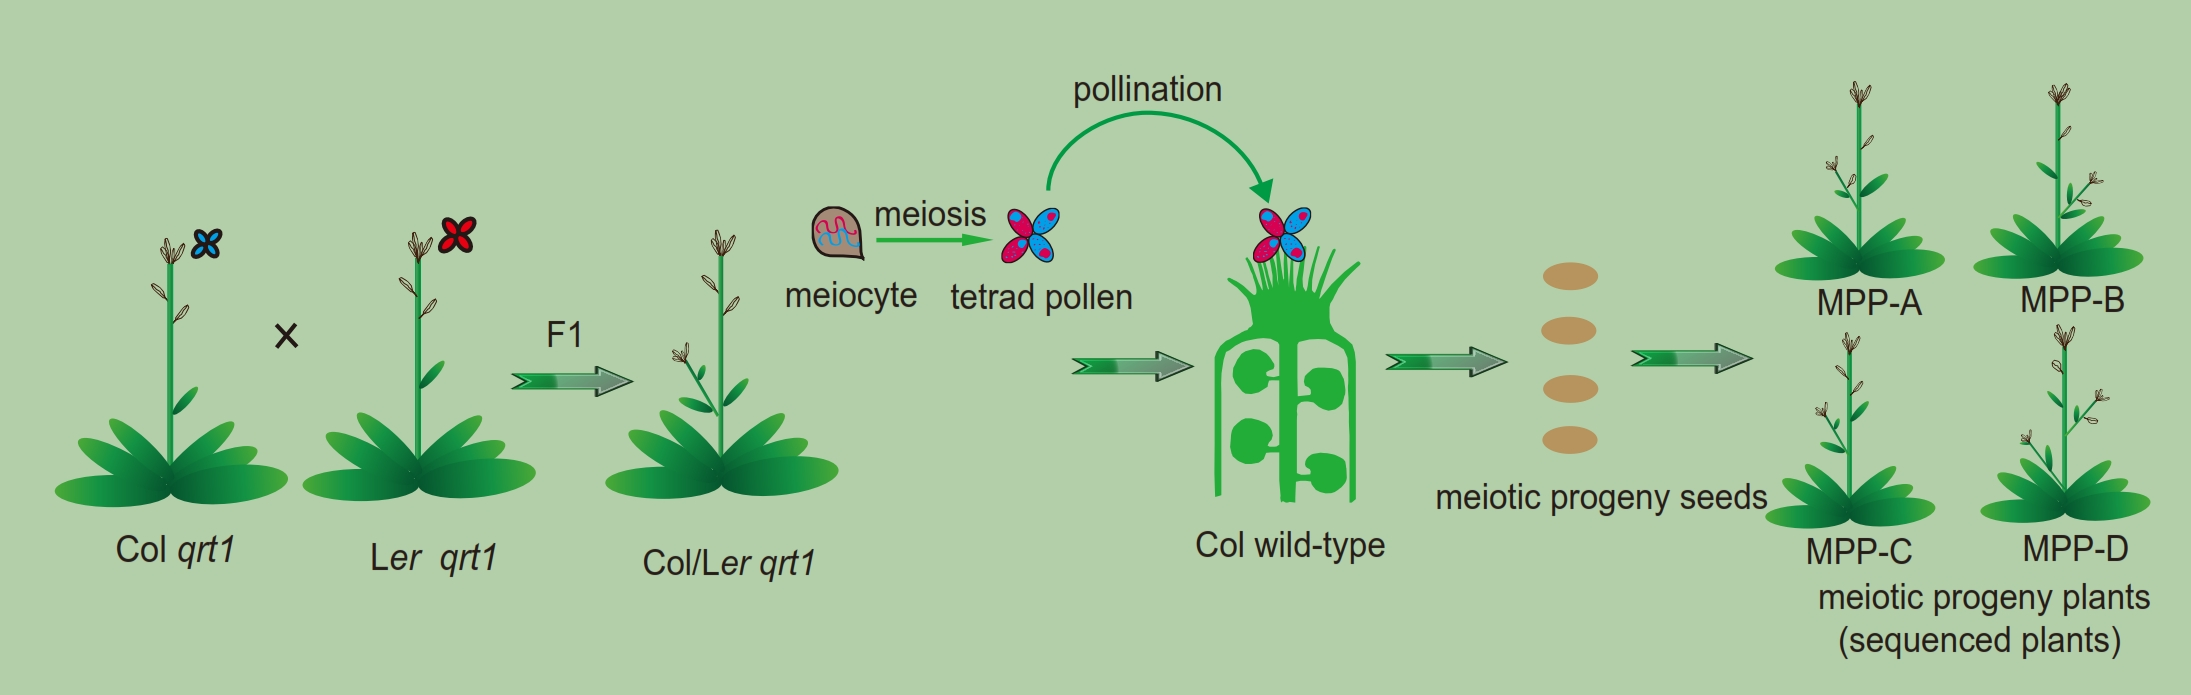 A schematic illustration of using genetic crosses to generate meiotic progeny plants for comprehensively investigating meiotic recombination events at a whole genome level at a single DNA base resolution. Notice: Only one pollen tetrad (four pollen grains) was picked for pollination.